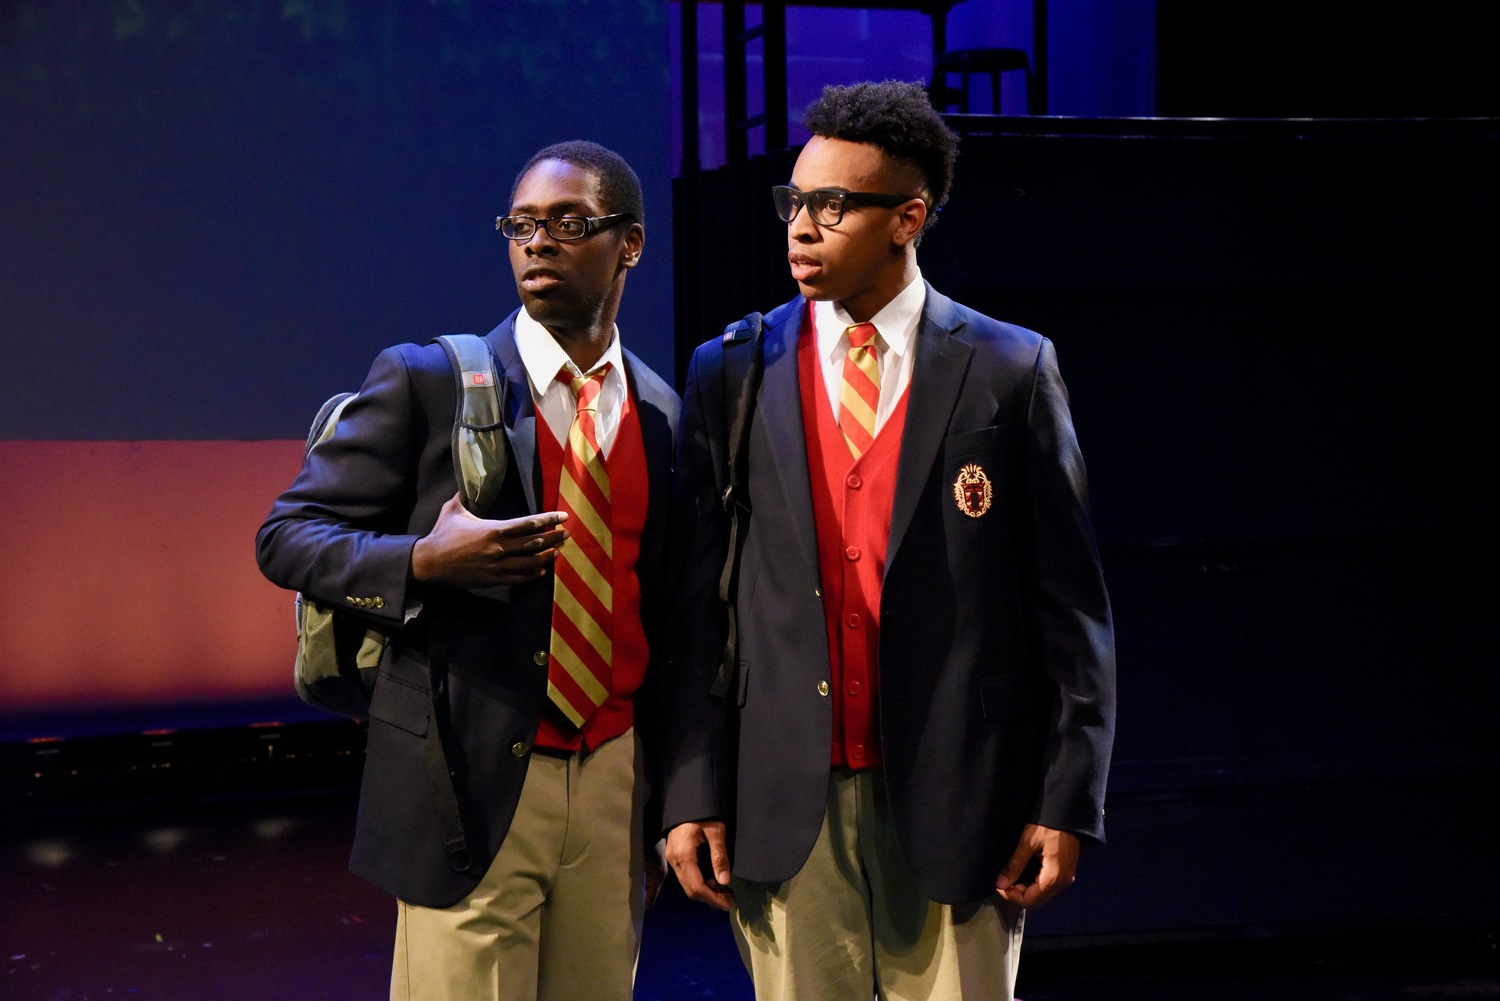 BWW Review: Mosaic Theater Brings Back Thought-Provoking HOODED, OR BEING BLACK FOR DUMMIES